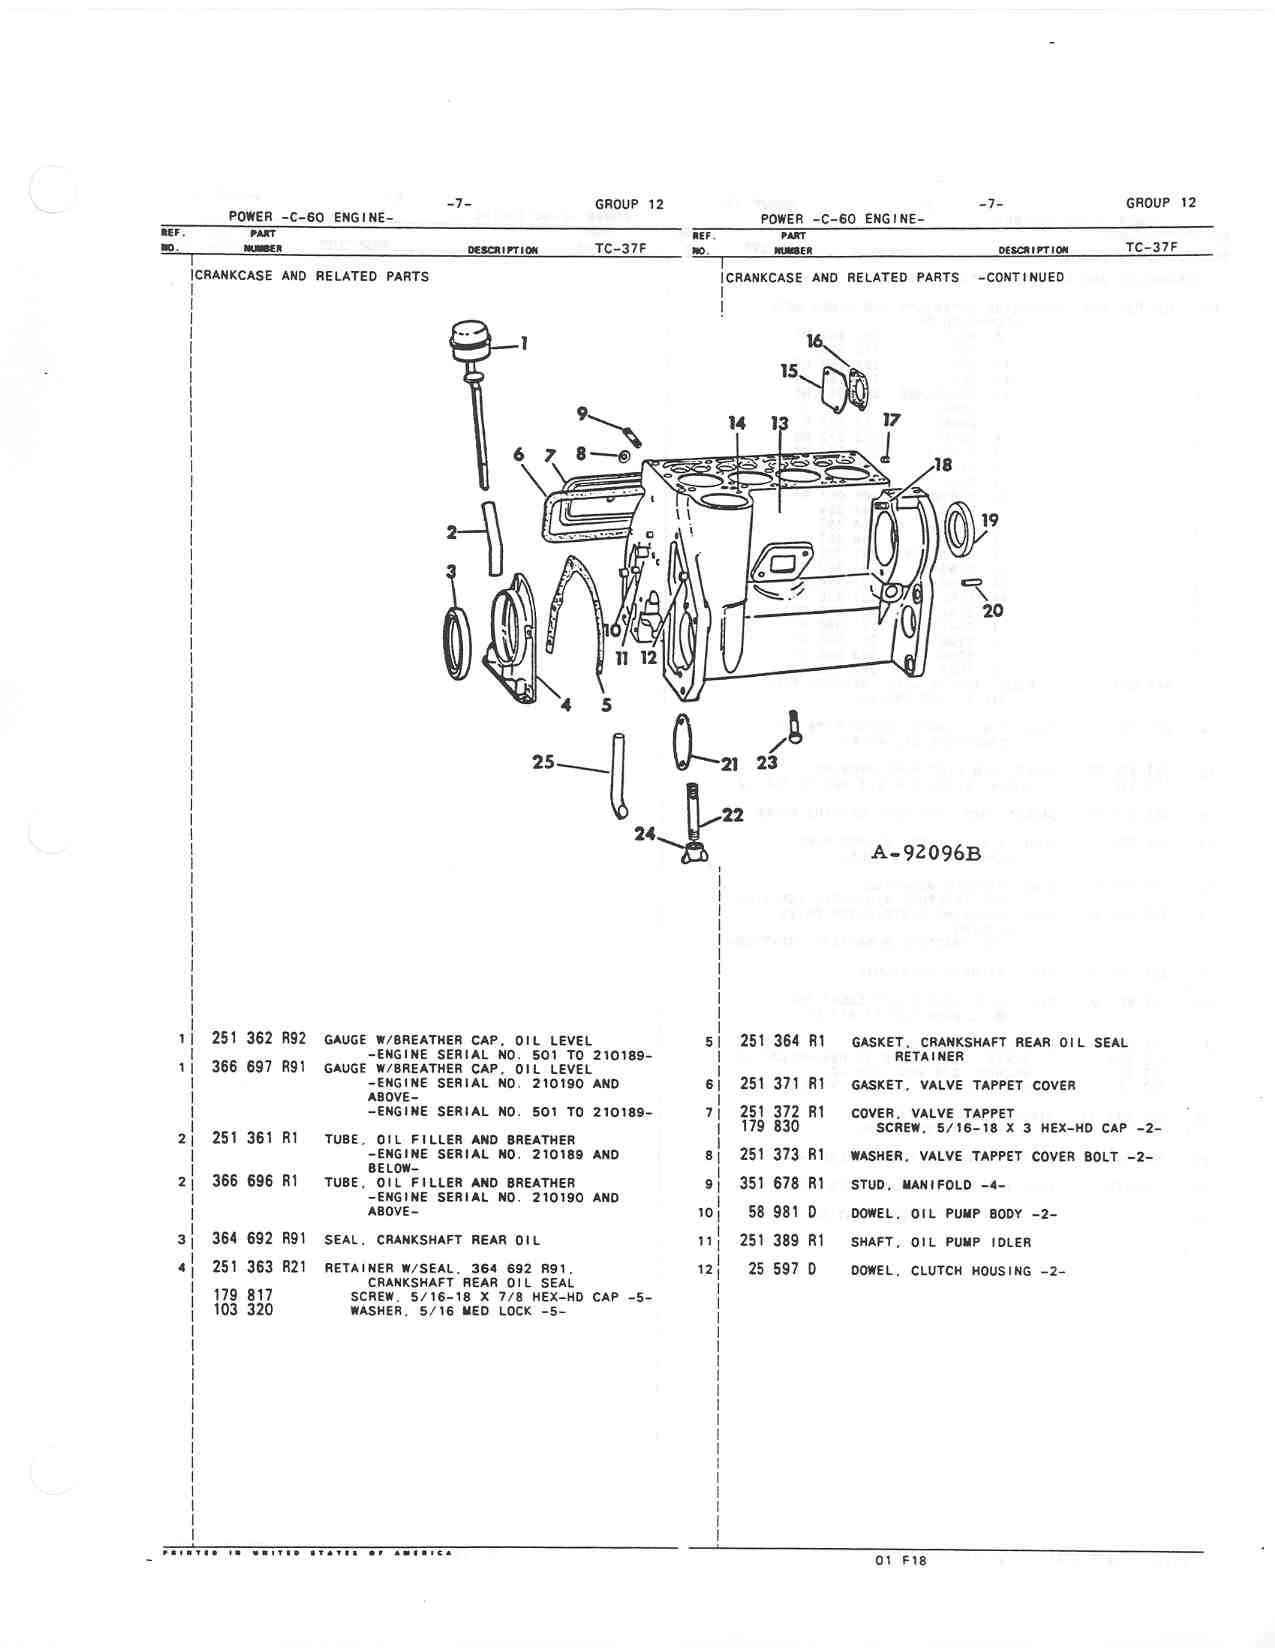 hight resolution of farmall super m engine block diagram farmall m tire size farmall m carburetor diagram farmall m carburetor diagram